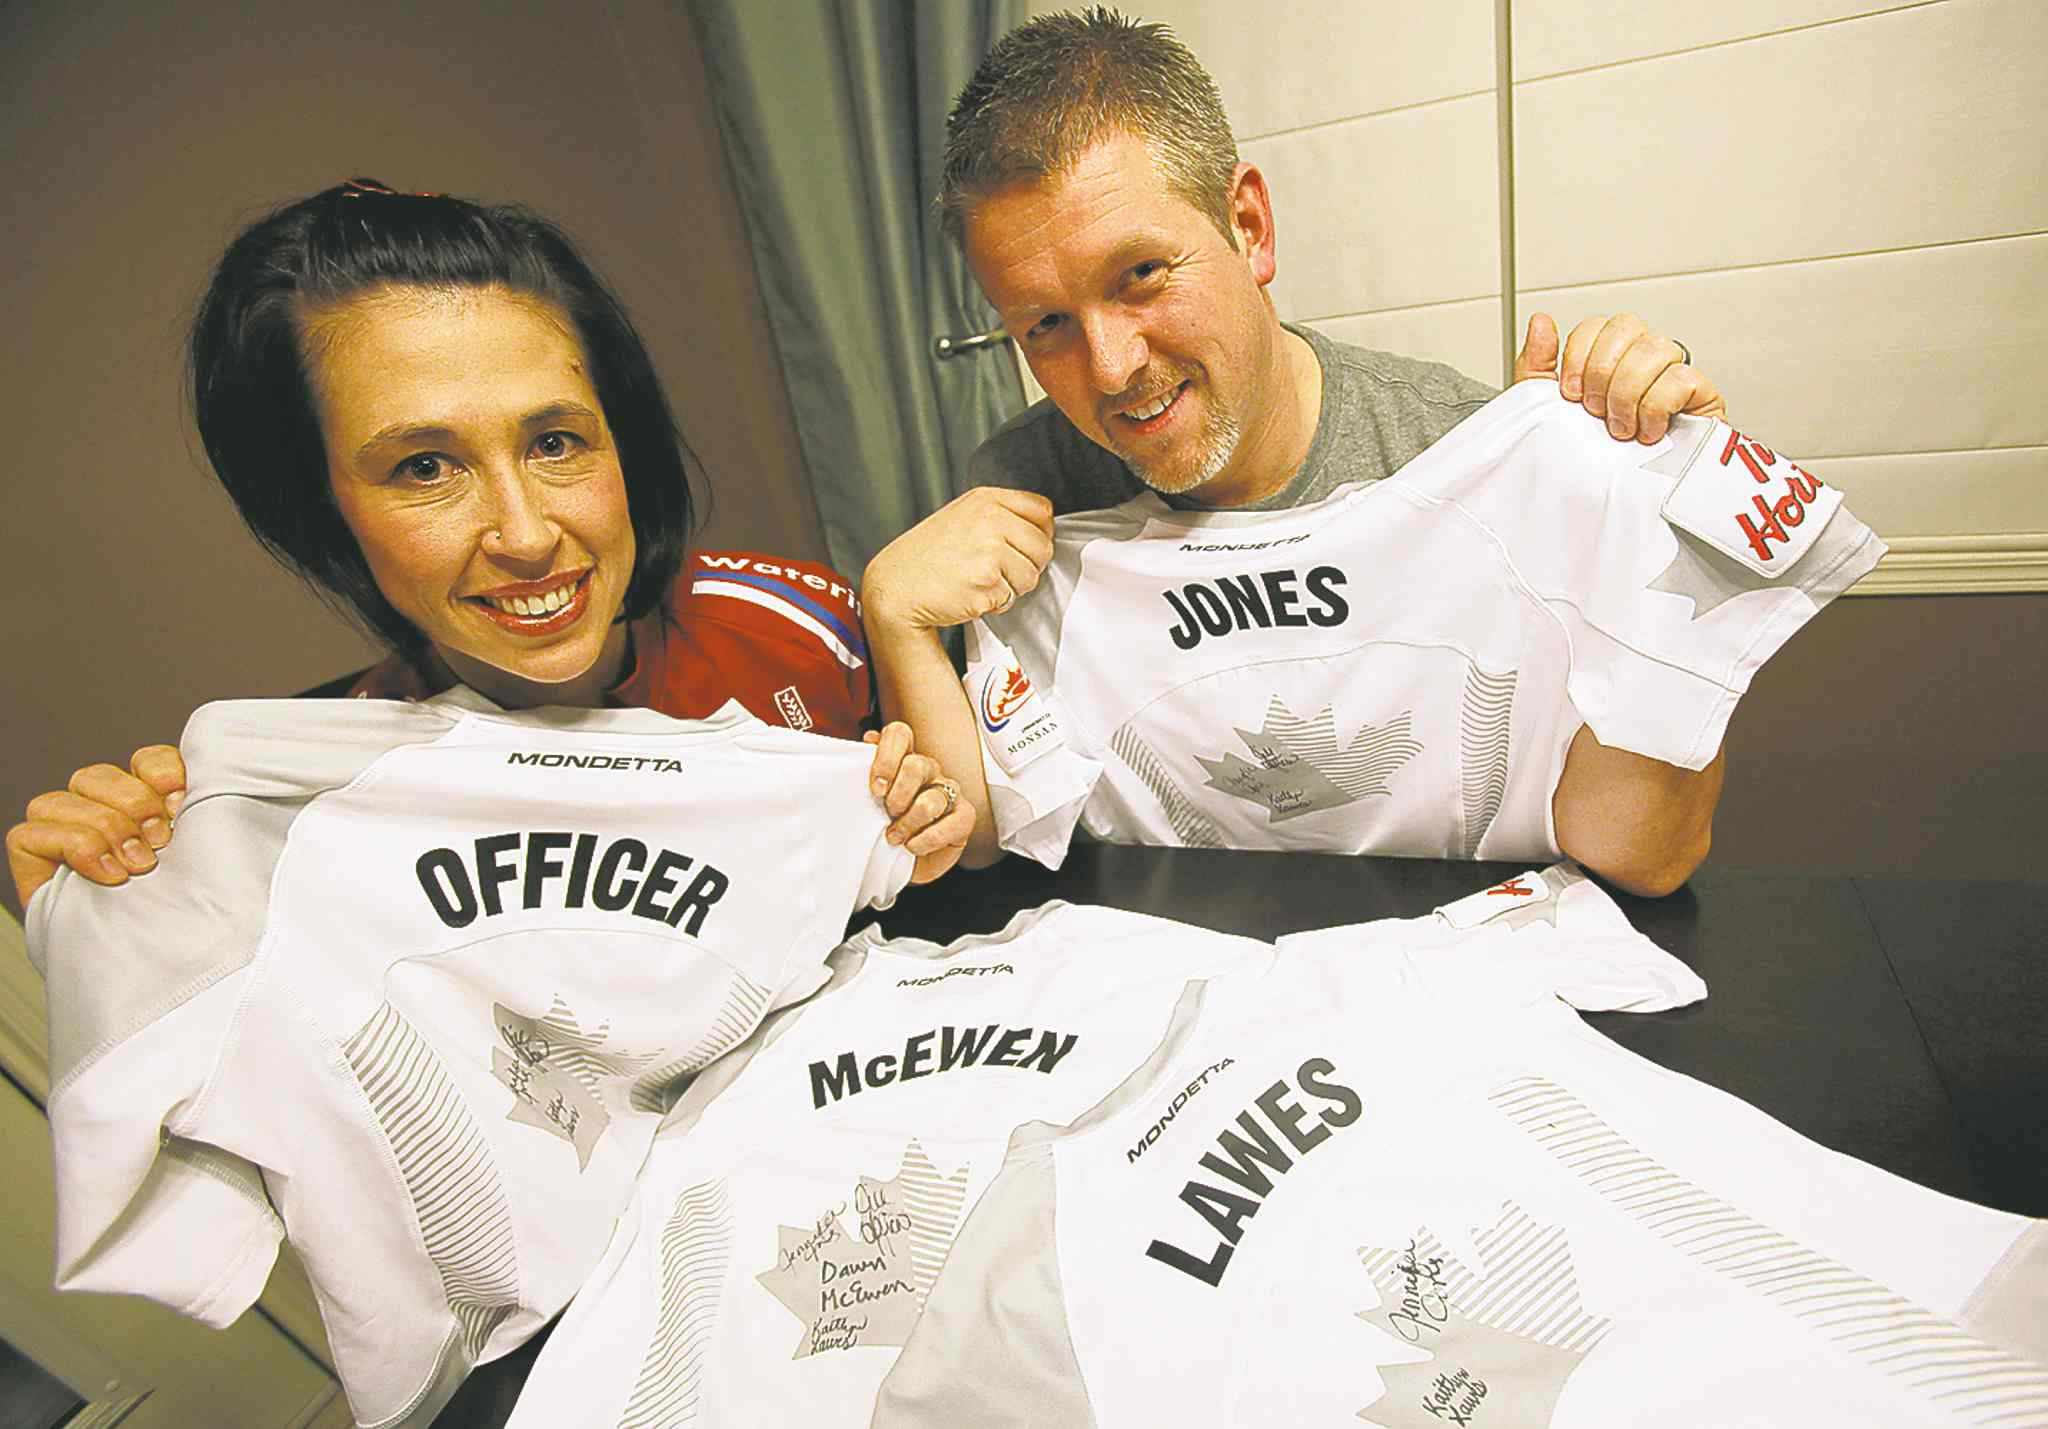 Members of the Jennifer Jones curling team competing in Sochi are auctioning signed jerseys from the Olympic trials to help cover the travel costs of their families. Devlin Hinchey said he'll be in Russia to root for his wife, second Jill Officer, regardless of the cost.